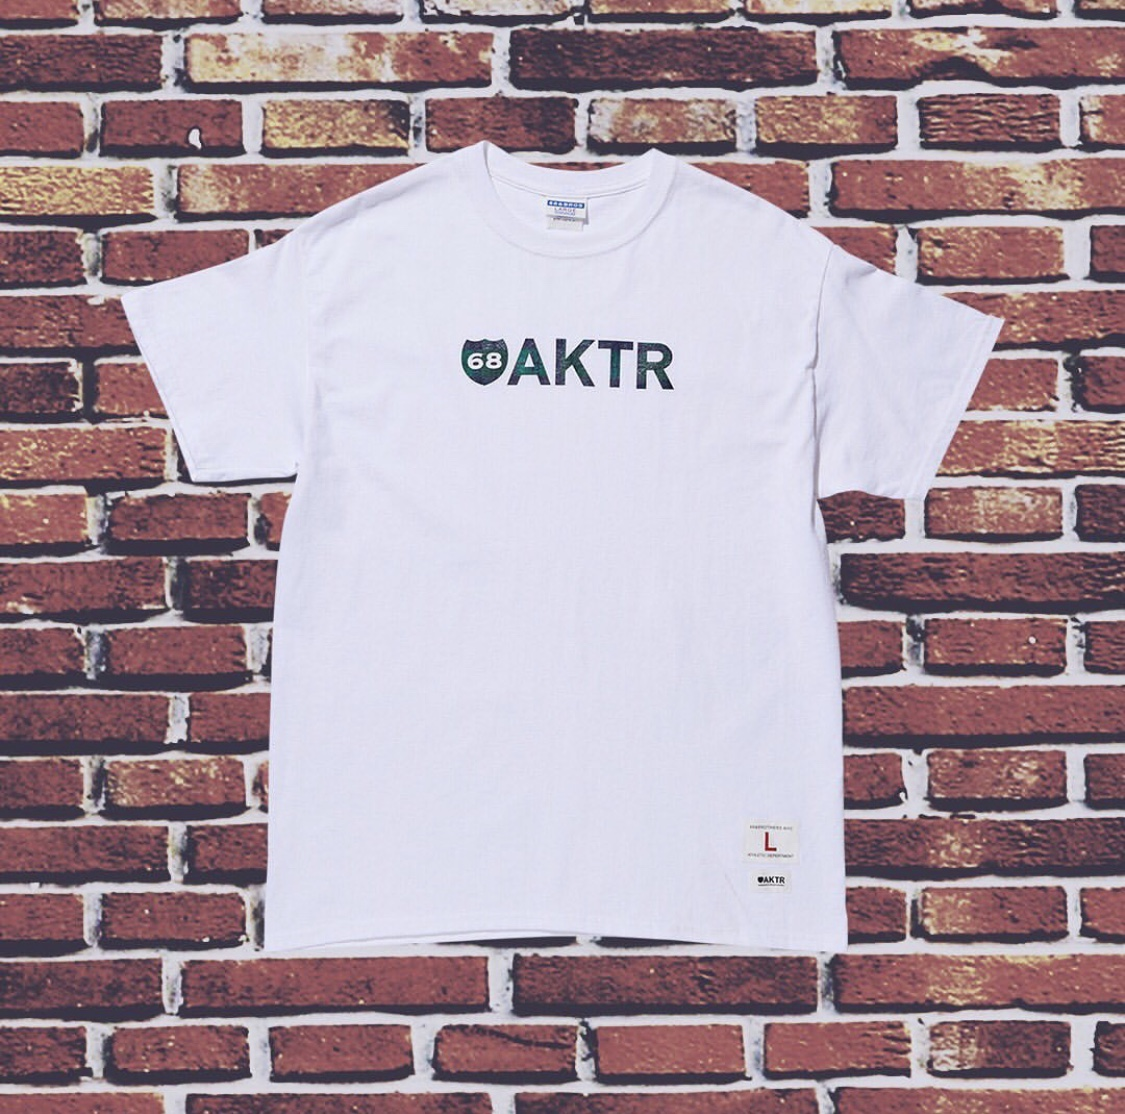 AKTR x68 BLACK WATCH LOGO TEE WHITEのイメージ